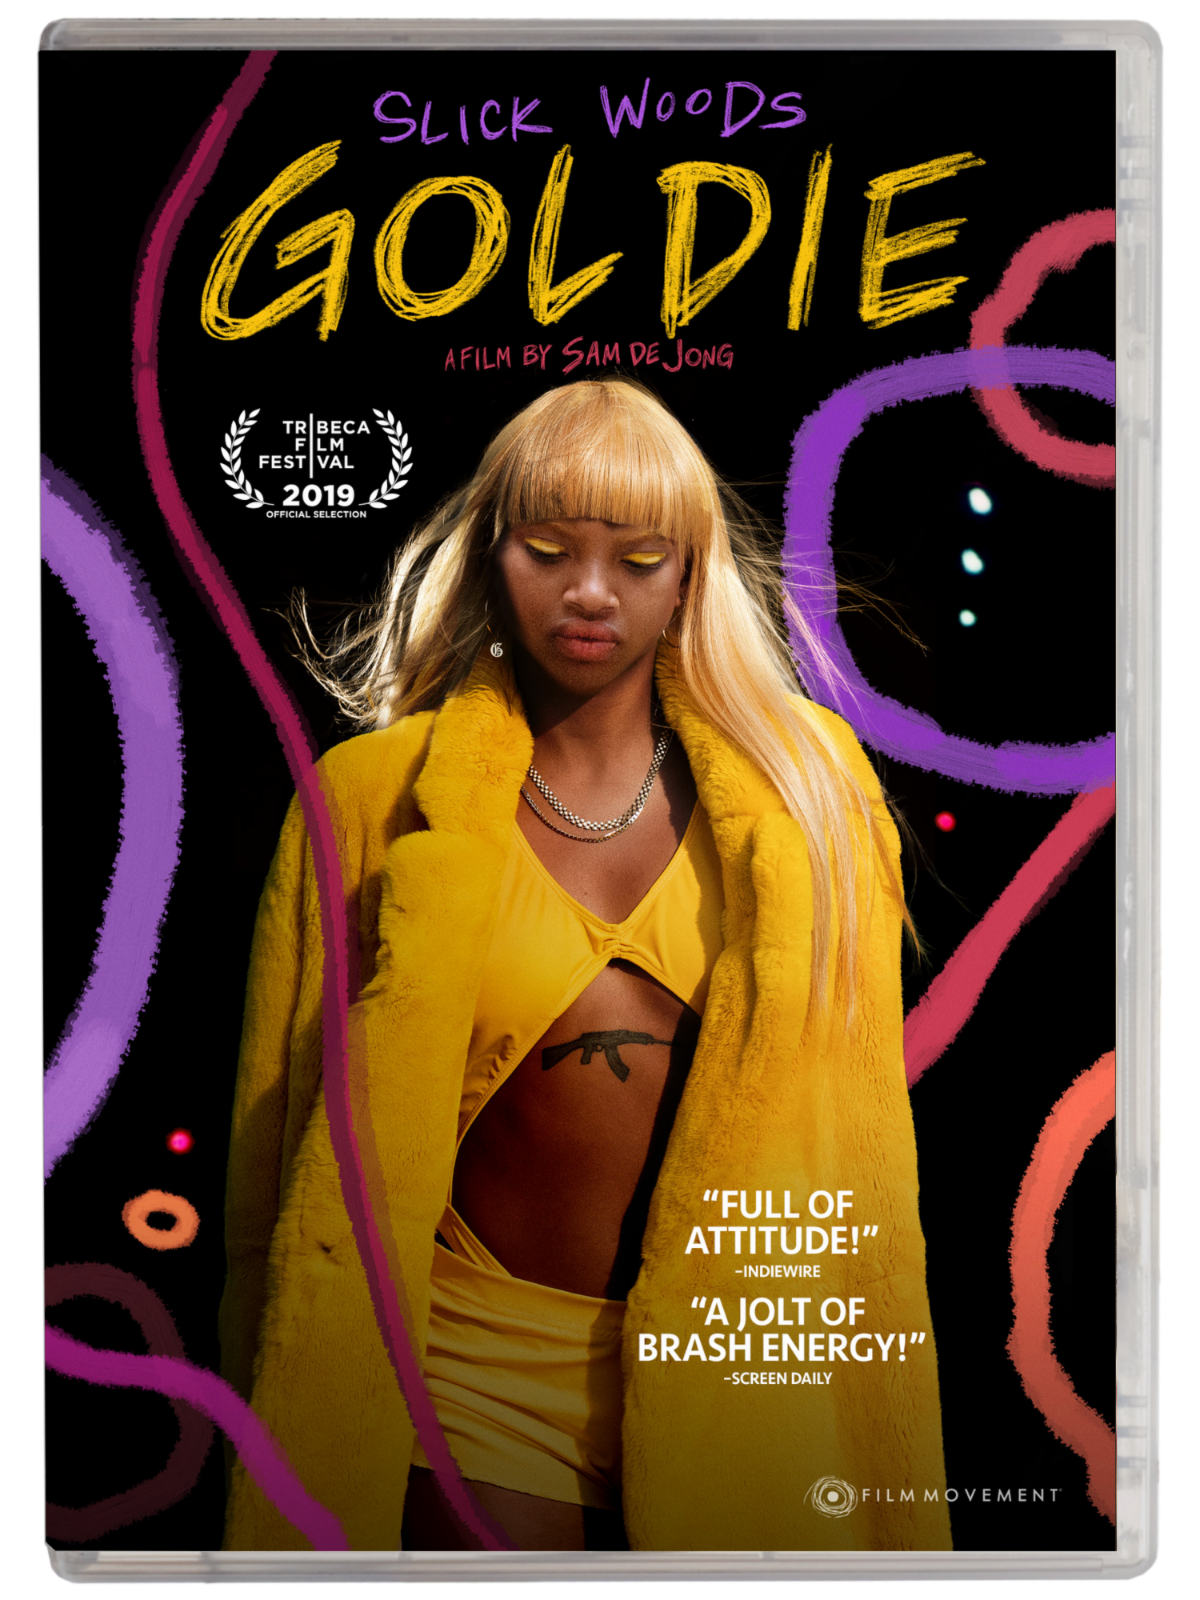 Supermodel Slick Woods Makes Her Acclaimed Feature Film Debut in GOLDIE